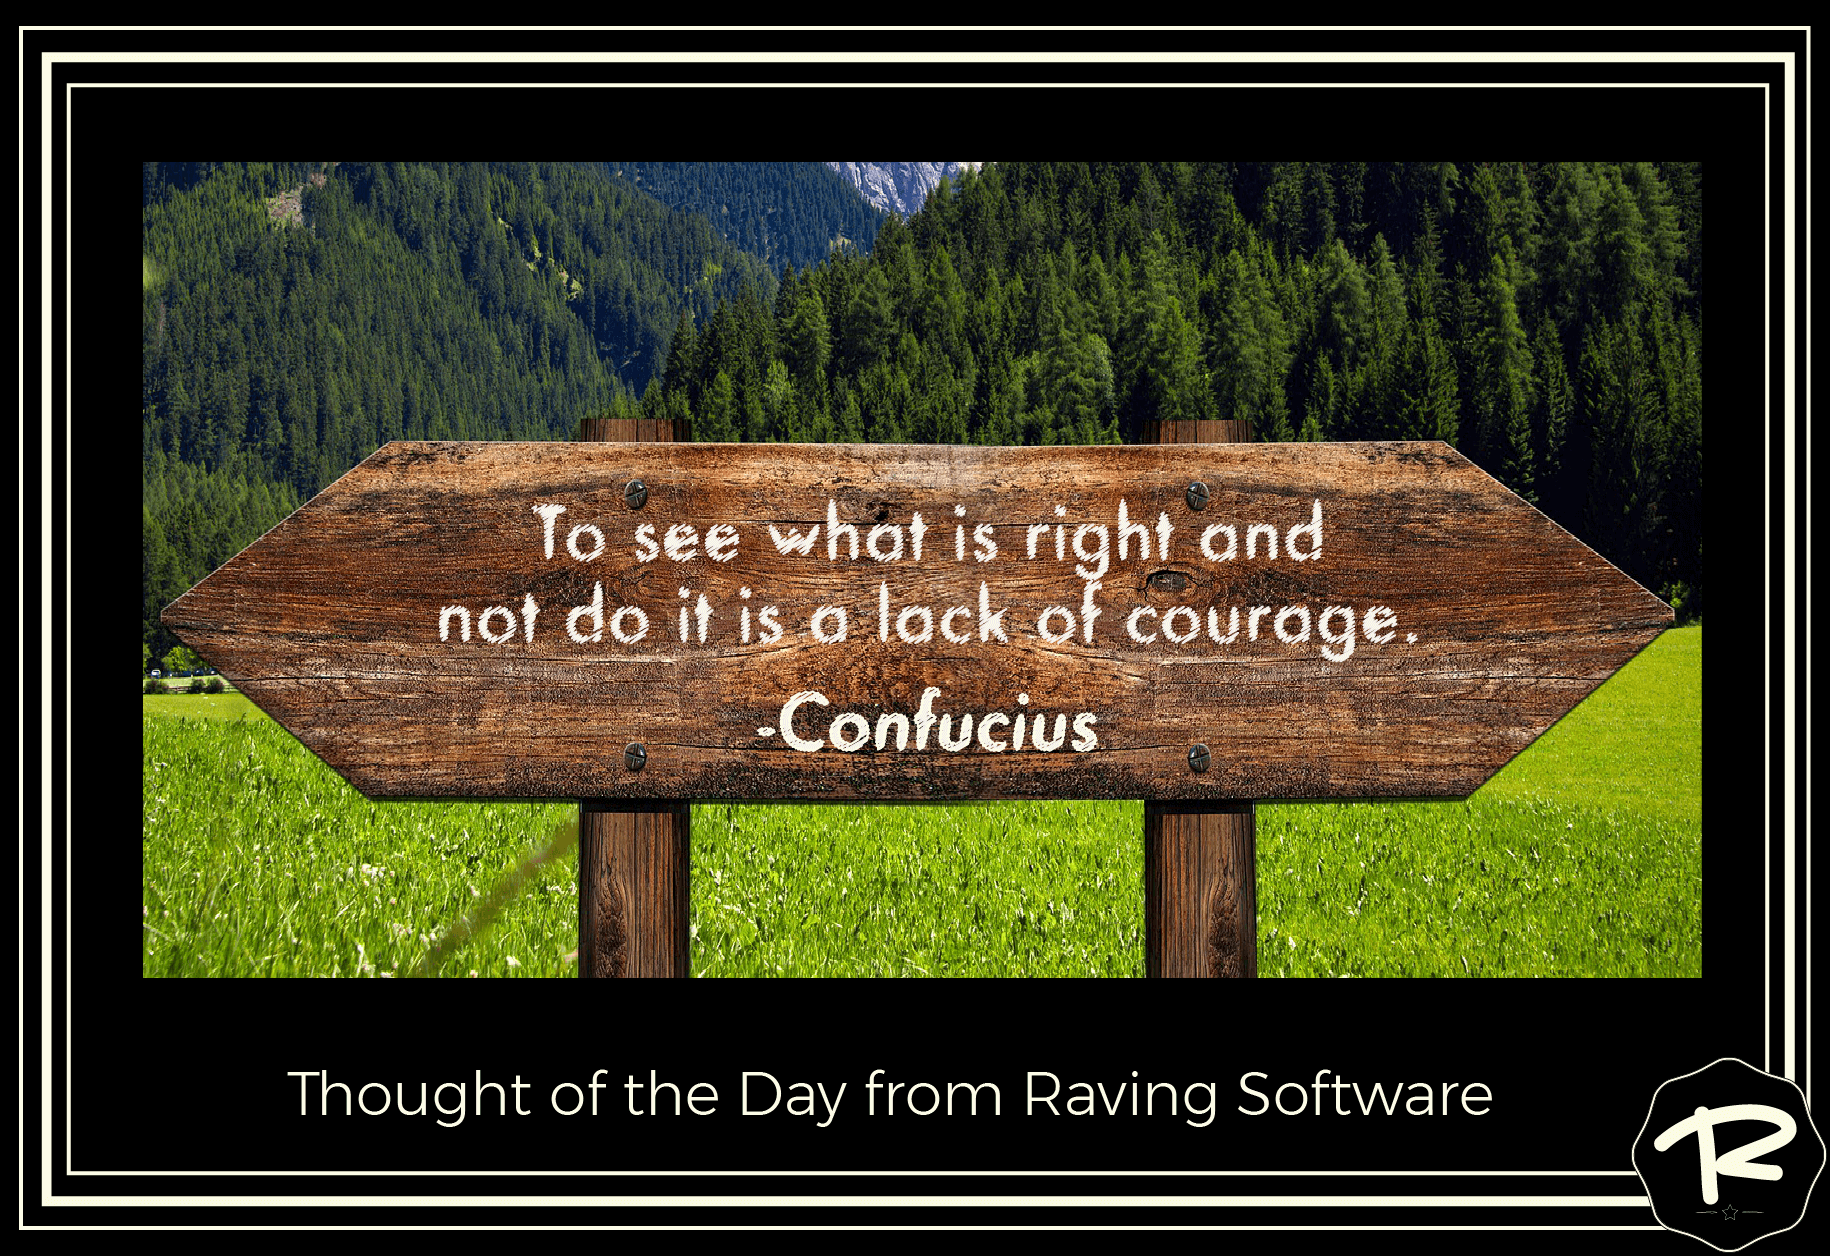 To see what is right and not do it is a lack of courage. —Confucius